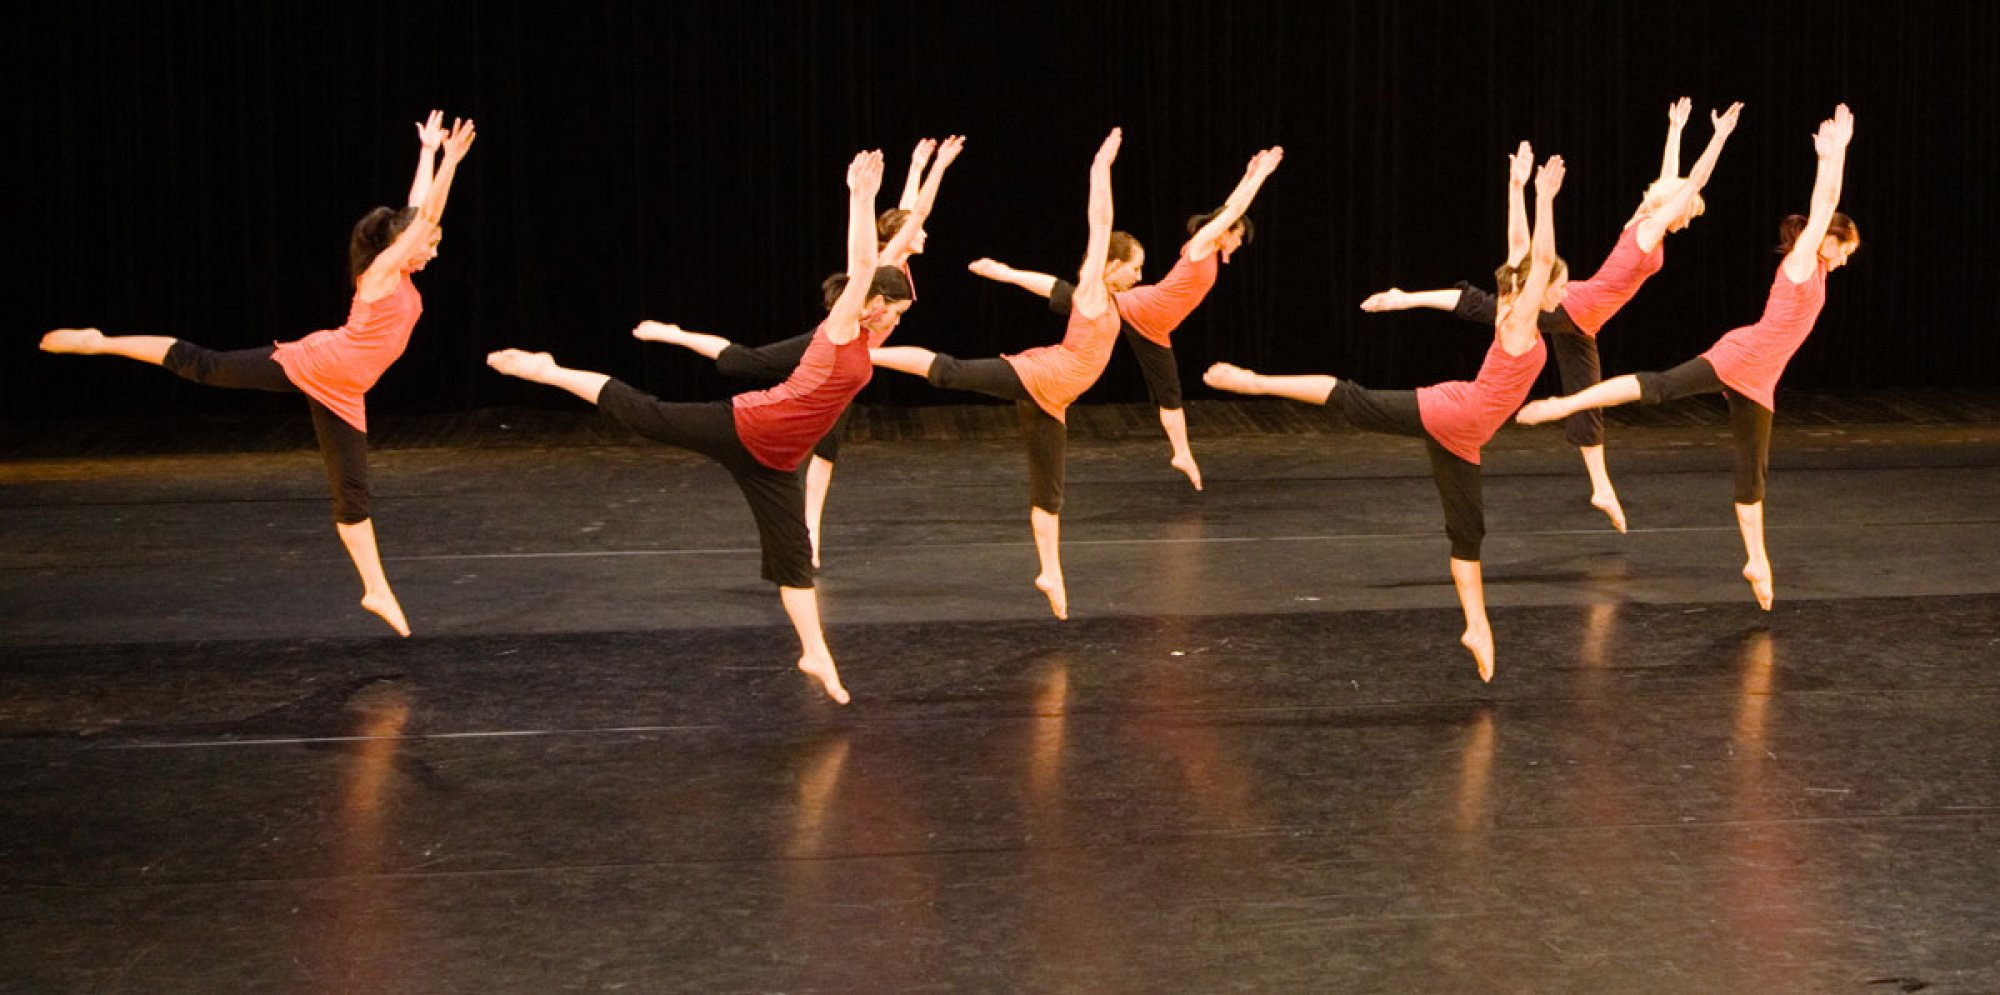 A group of young dancers performing on stage